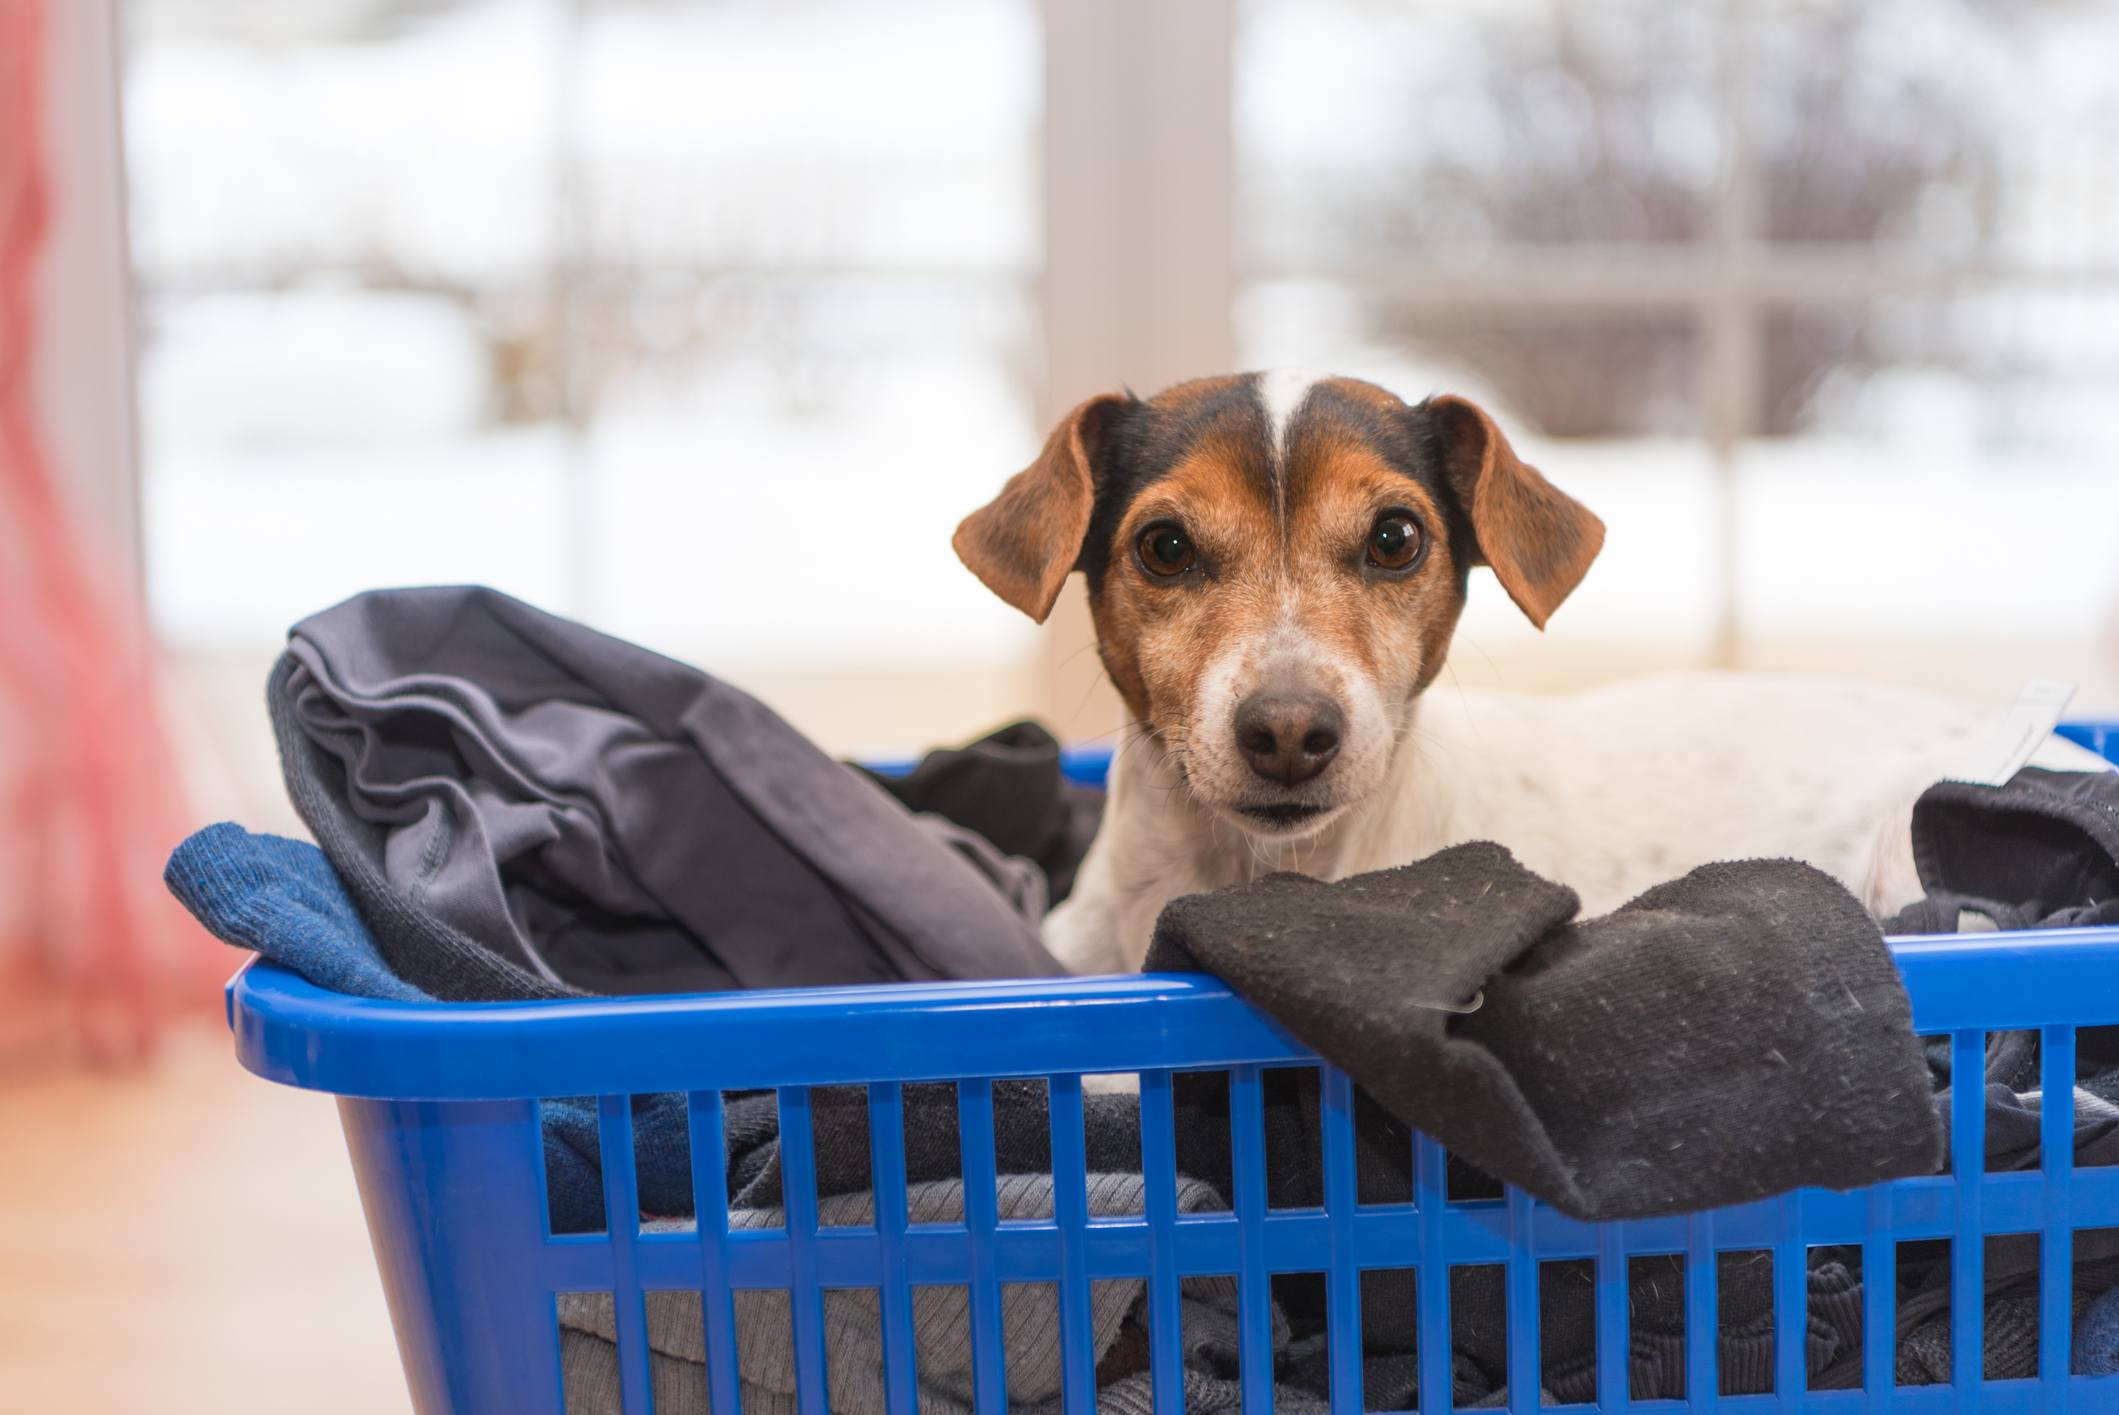 Jack Russell Terrier dog in a laundry basket full of clothes